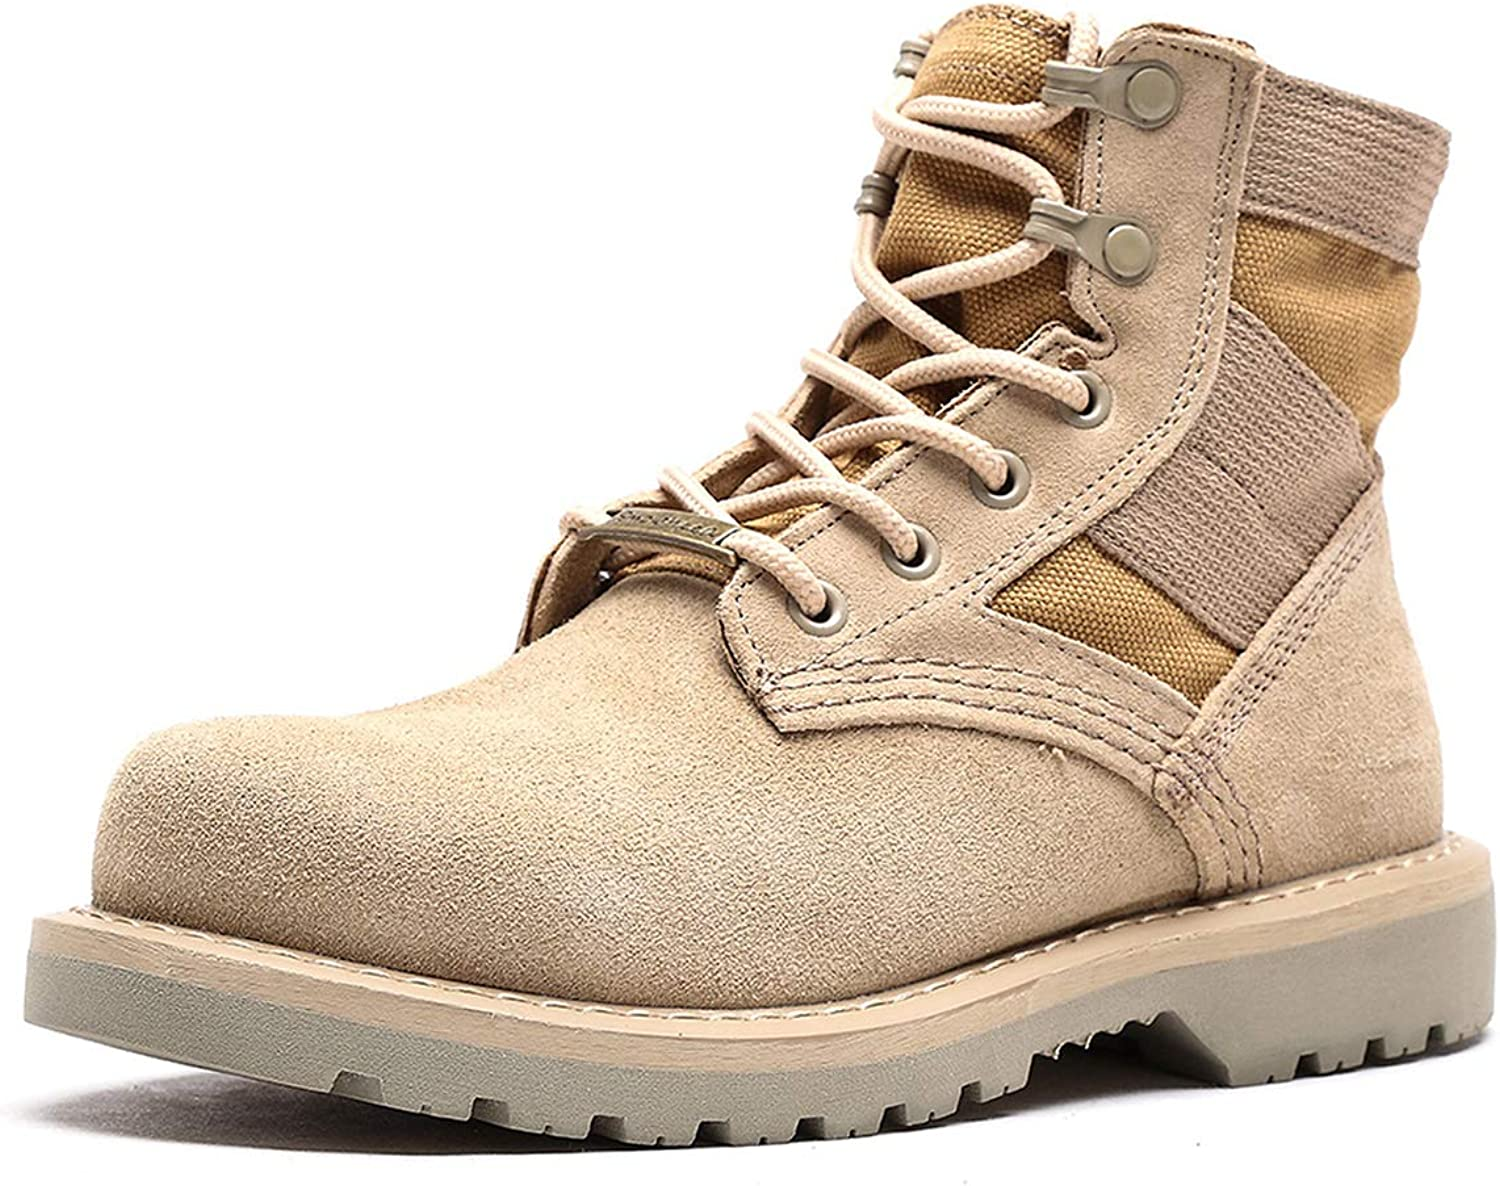 Unisex Desert Boots Leather Couple Martin Boots Boots Boots High-top Low-slip Non-slip Outdoor shoes